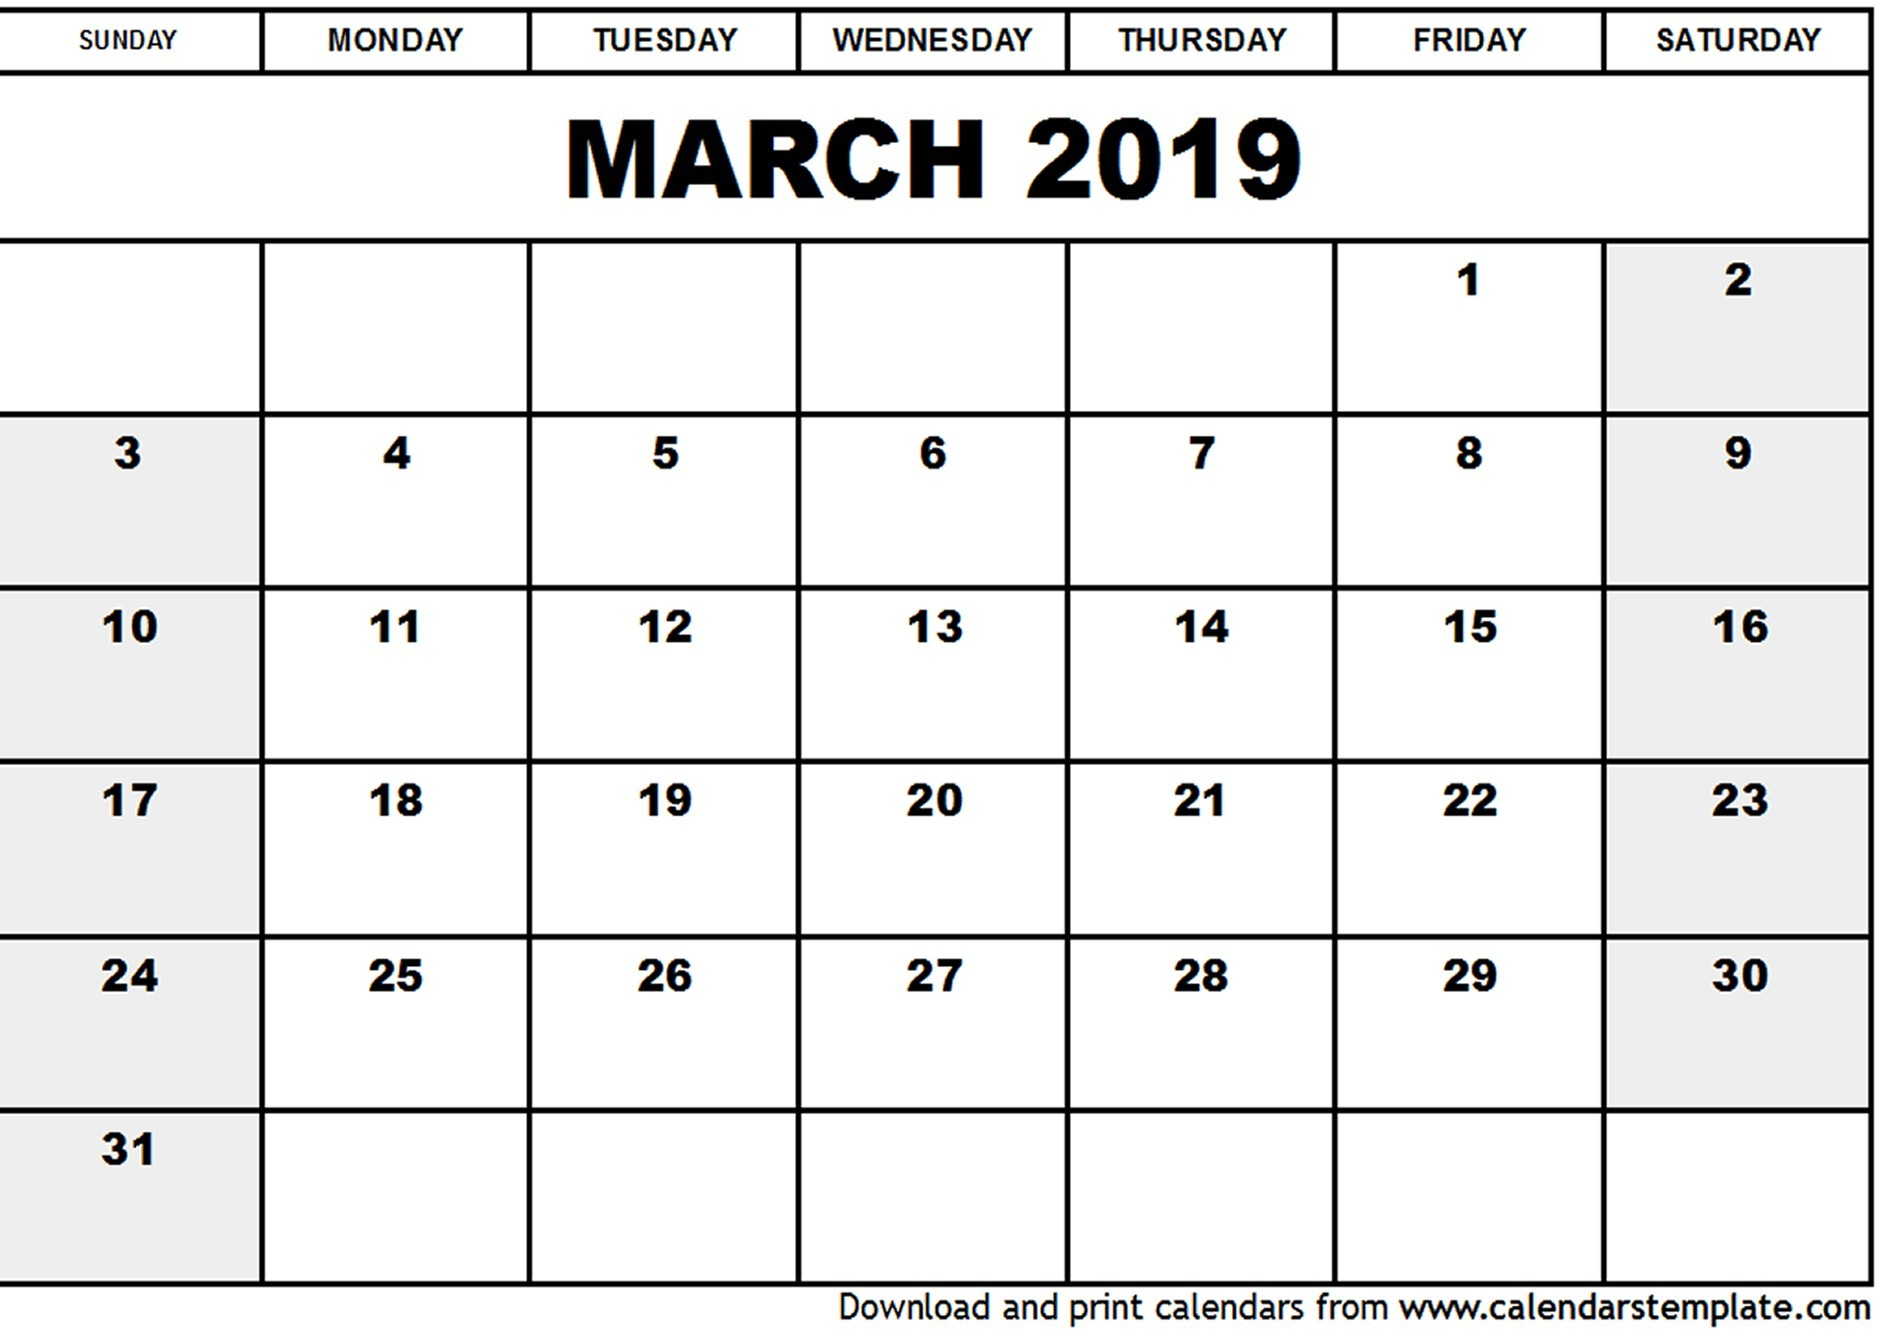 march 2019 calendar pdf march 2019 printable calendar march 2019 calendar template march 2019 calendar printable